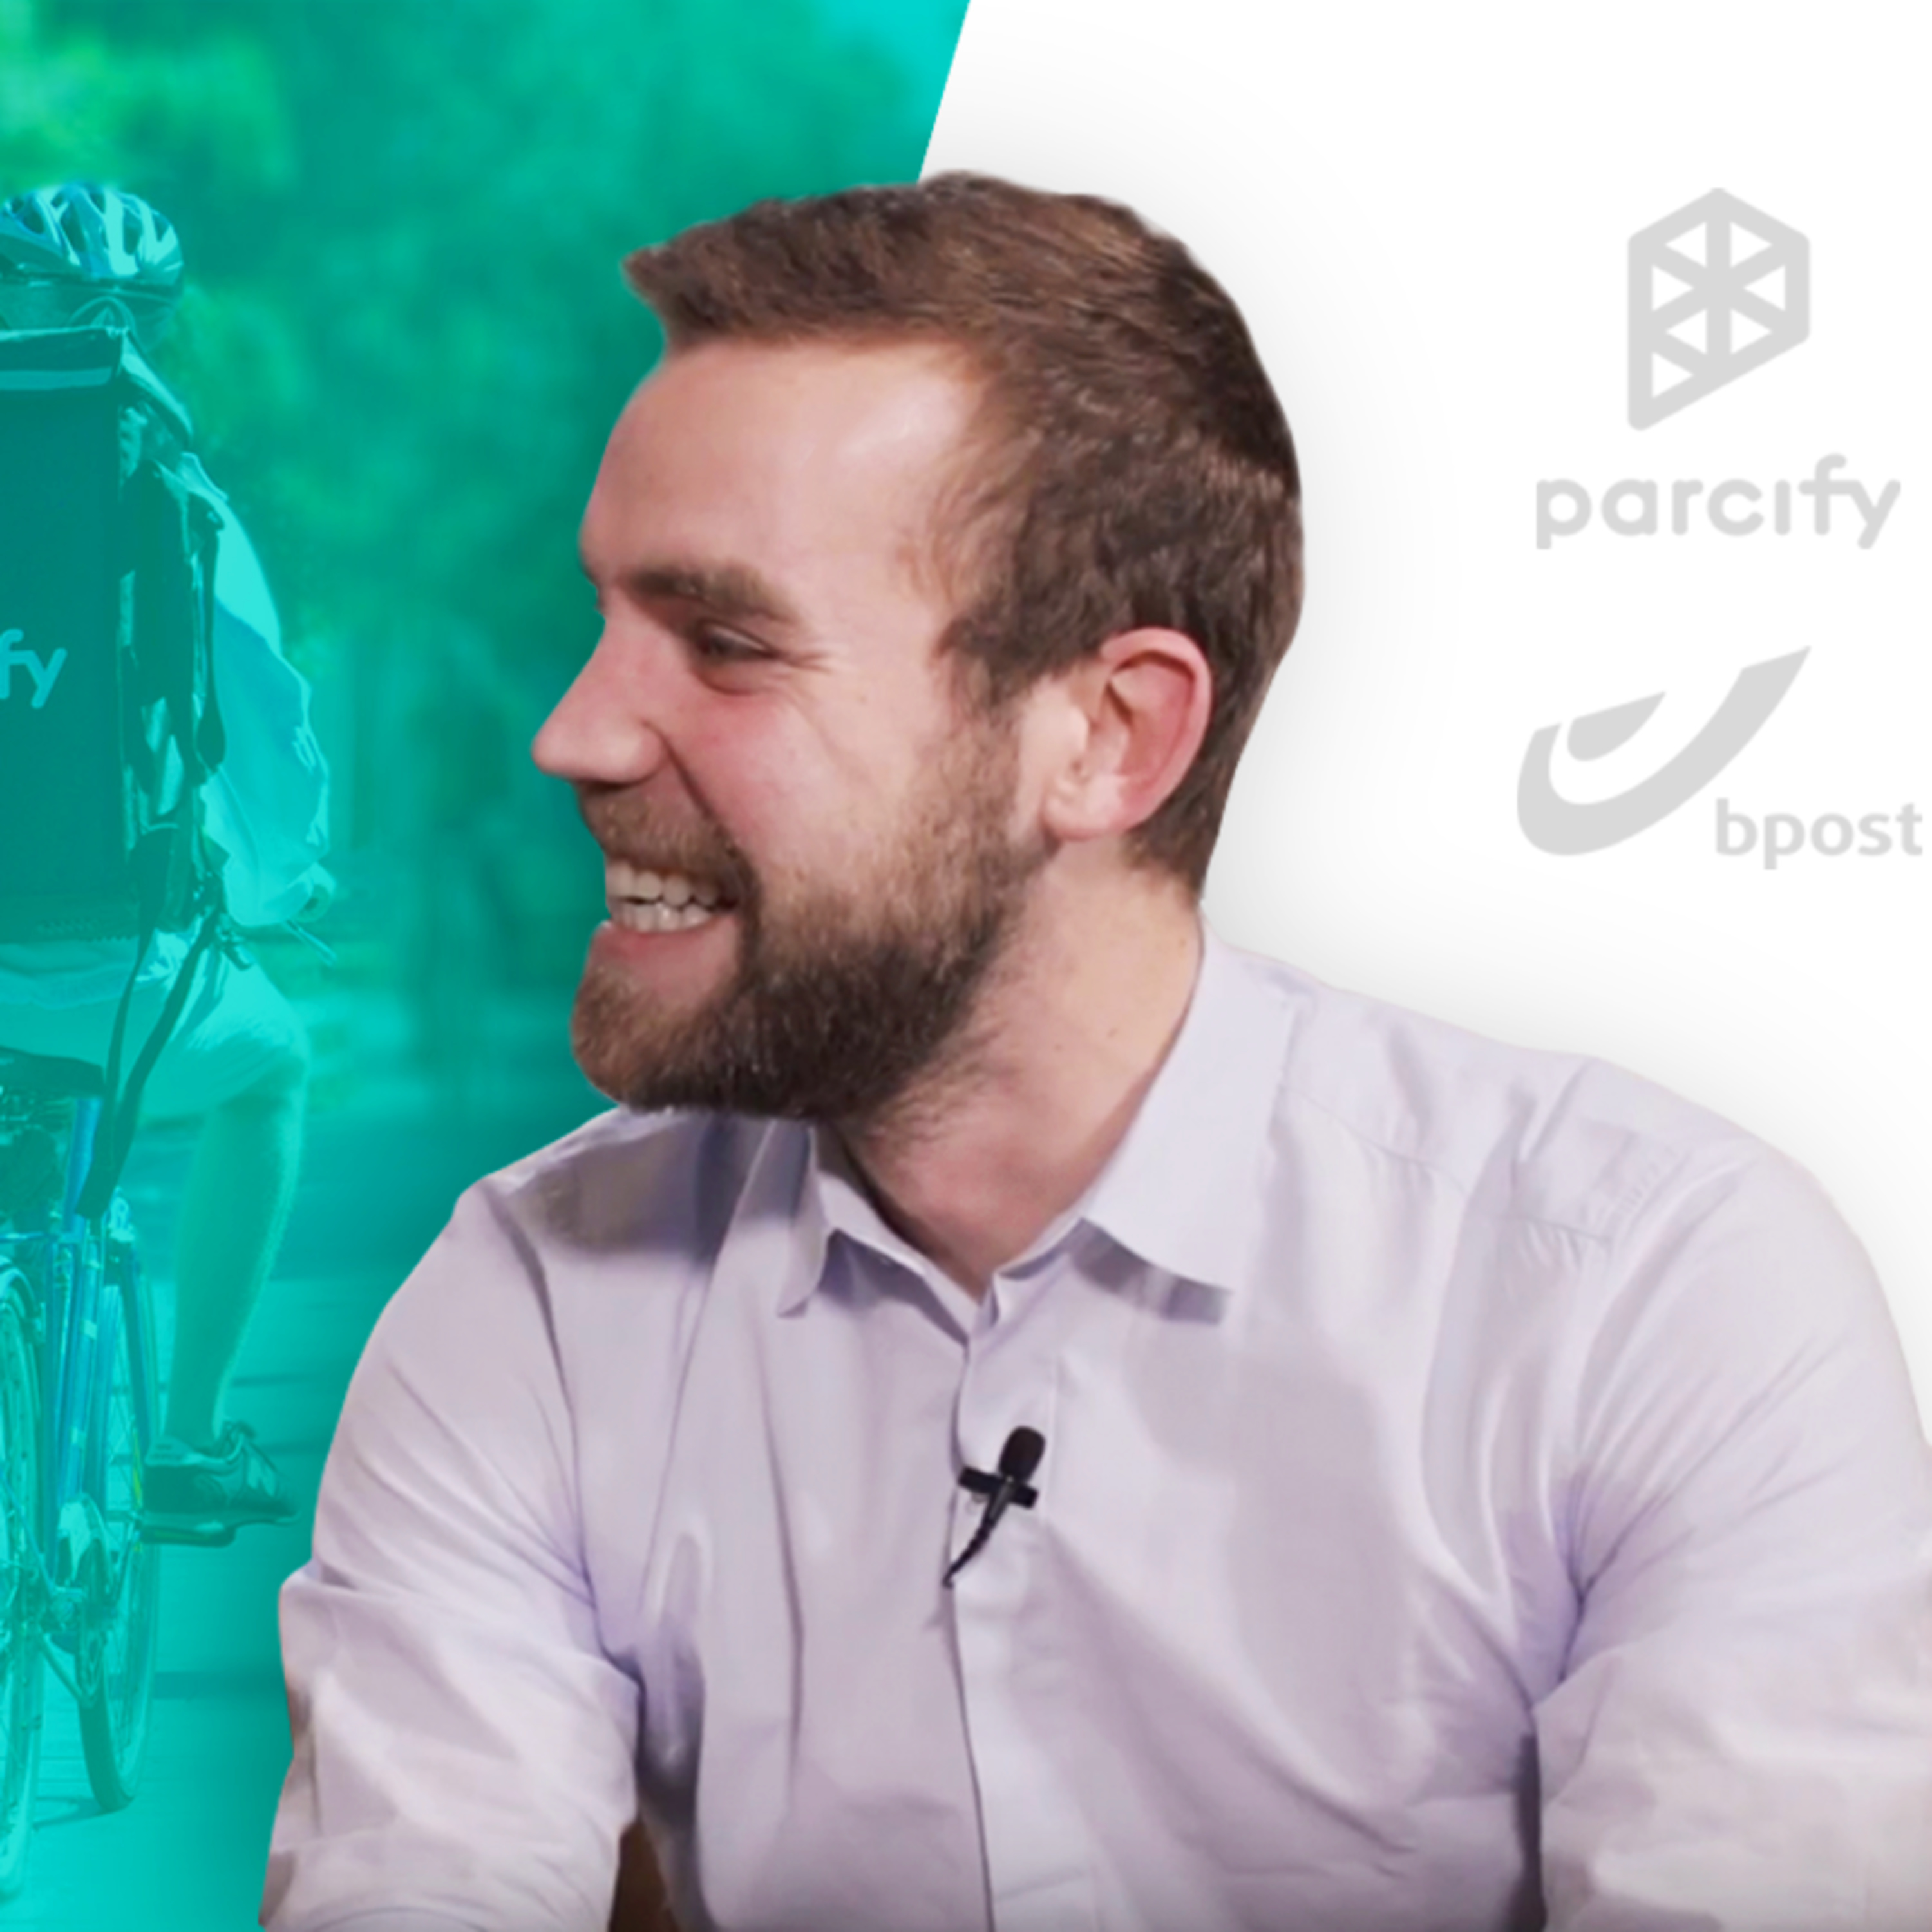 William de Vos — building a new parcel delivery service in the emerging sharing economy: Parcify by Bpost